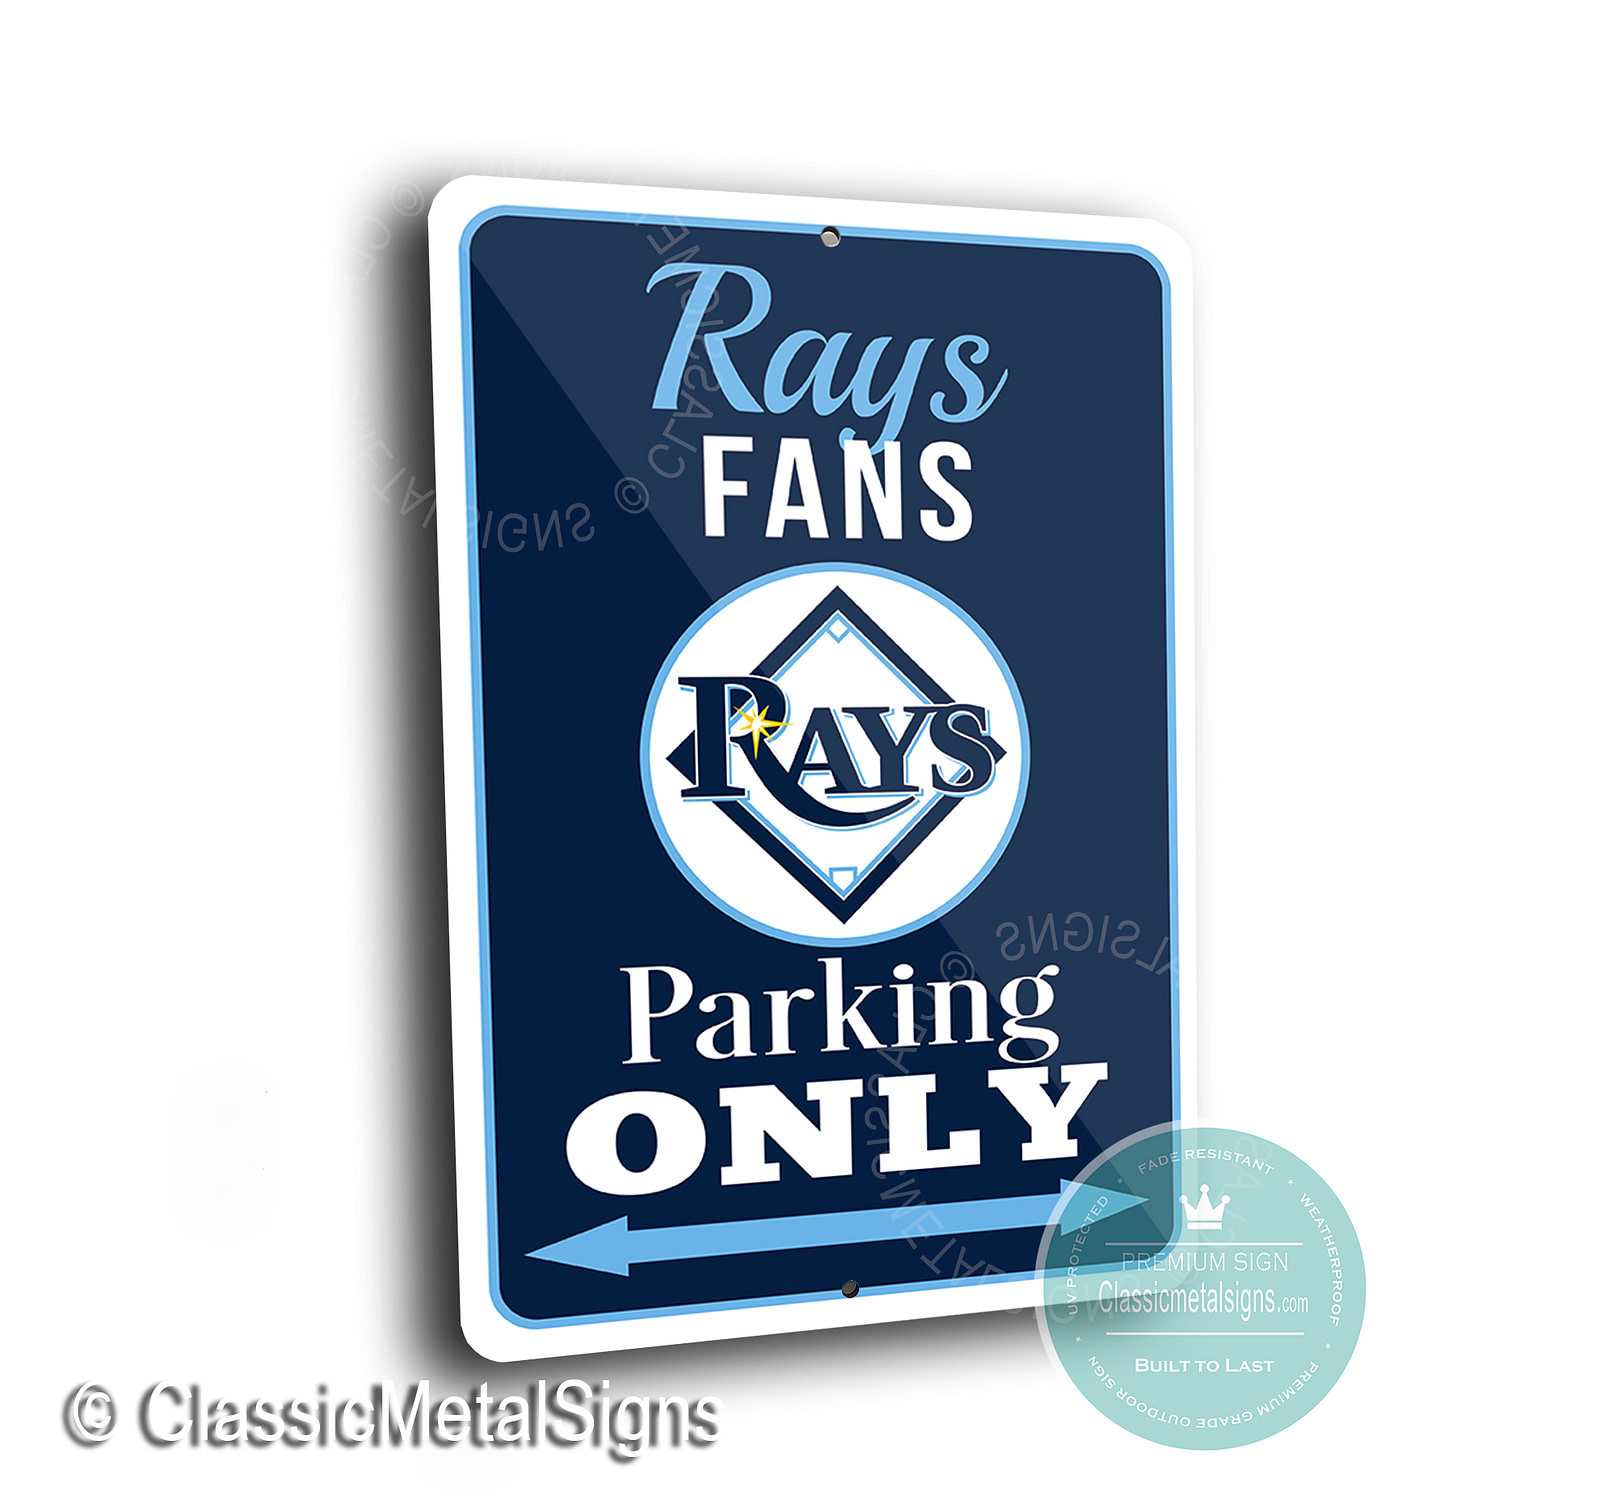 Tampa Bay Rays Parking Only Sign